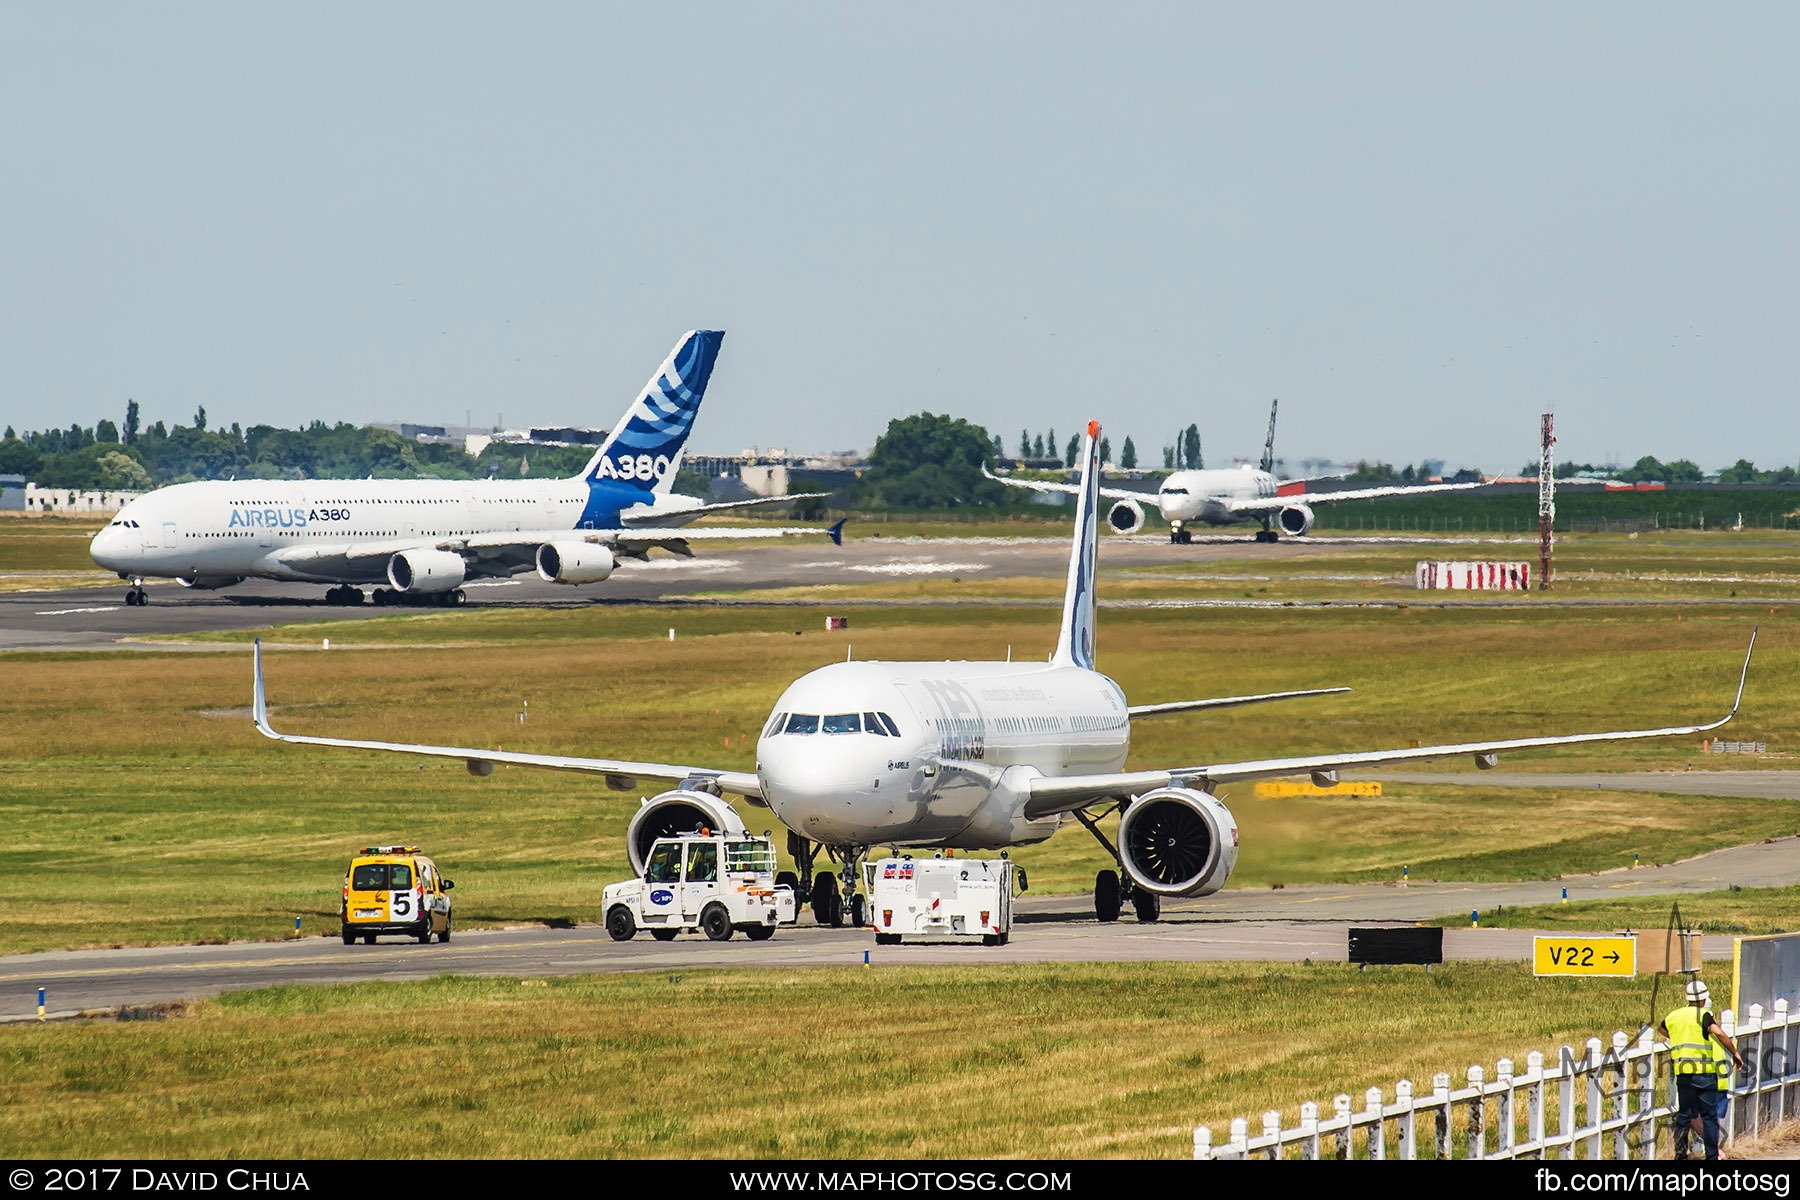 34. A trio of Airbuses on the tarmac at the same time. The A320neo in the centre taxiing back after it's demonstration flight while an A380-800 crosses the runway to prepare for it's display while the A350-1000 is at the end of the runway ready for take off once the A380-800 clears.